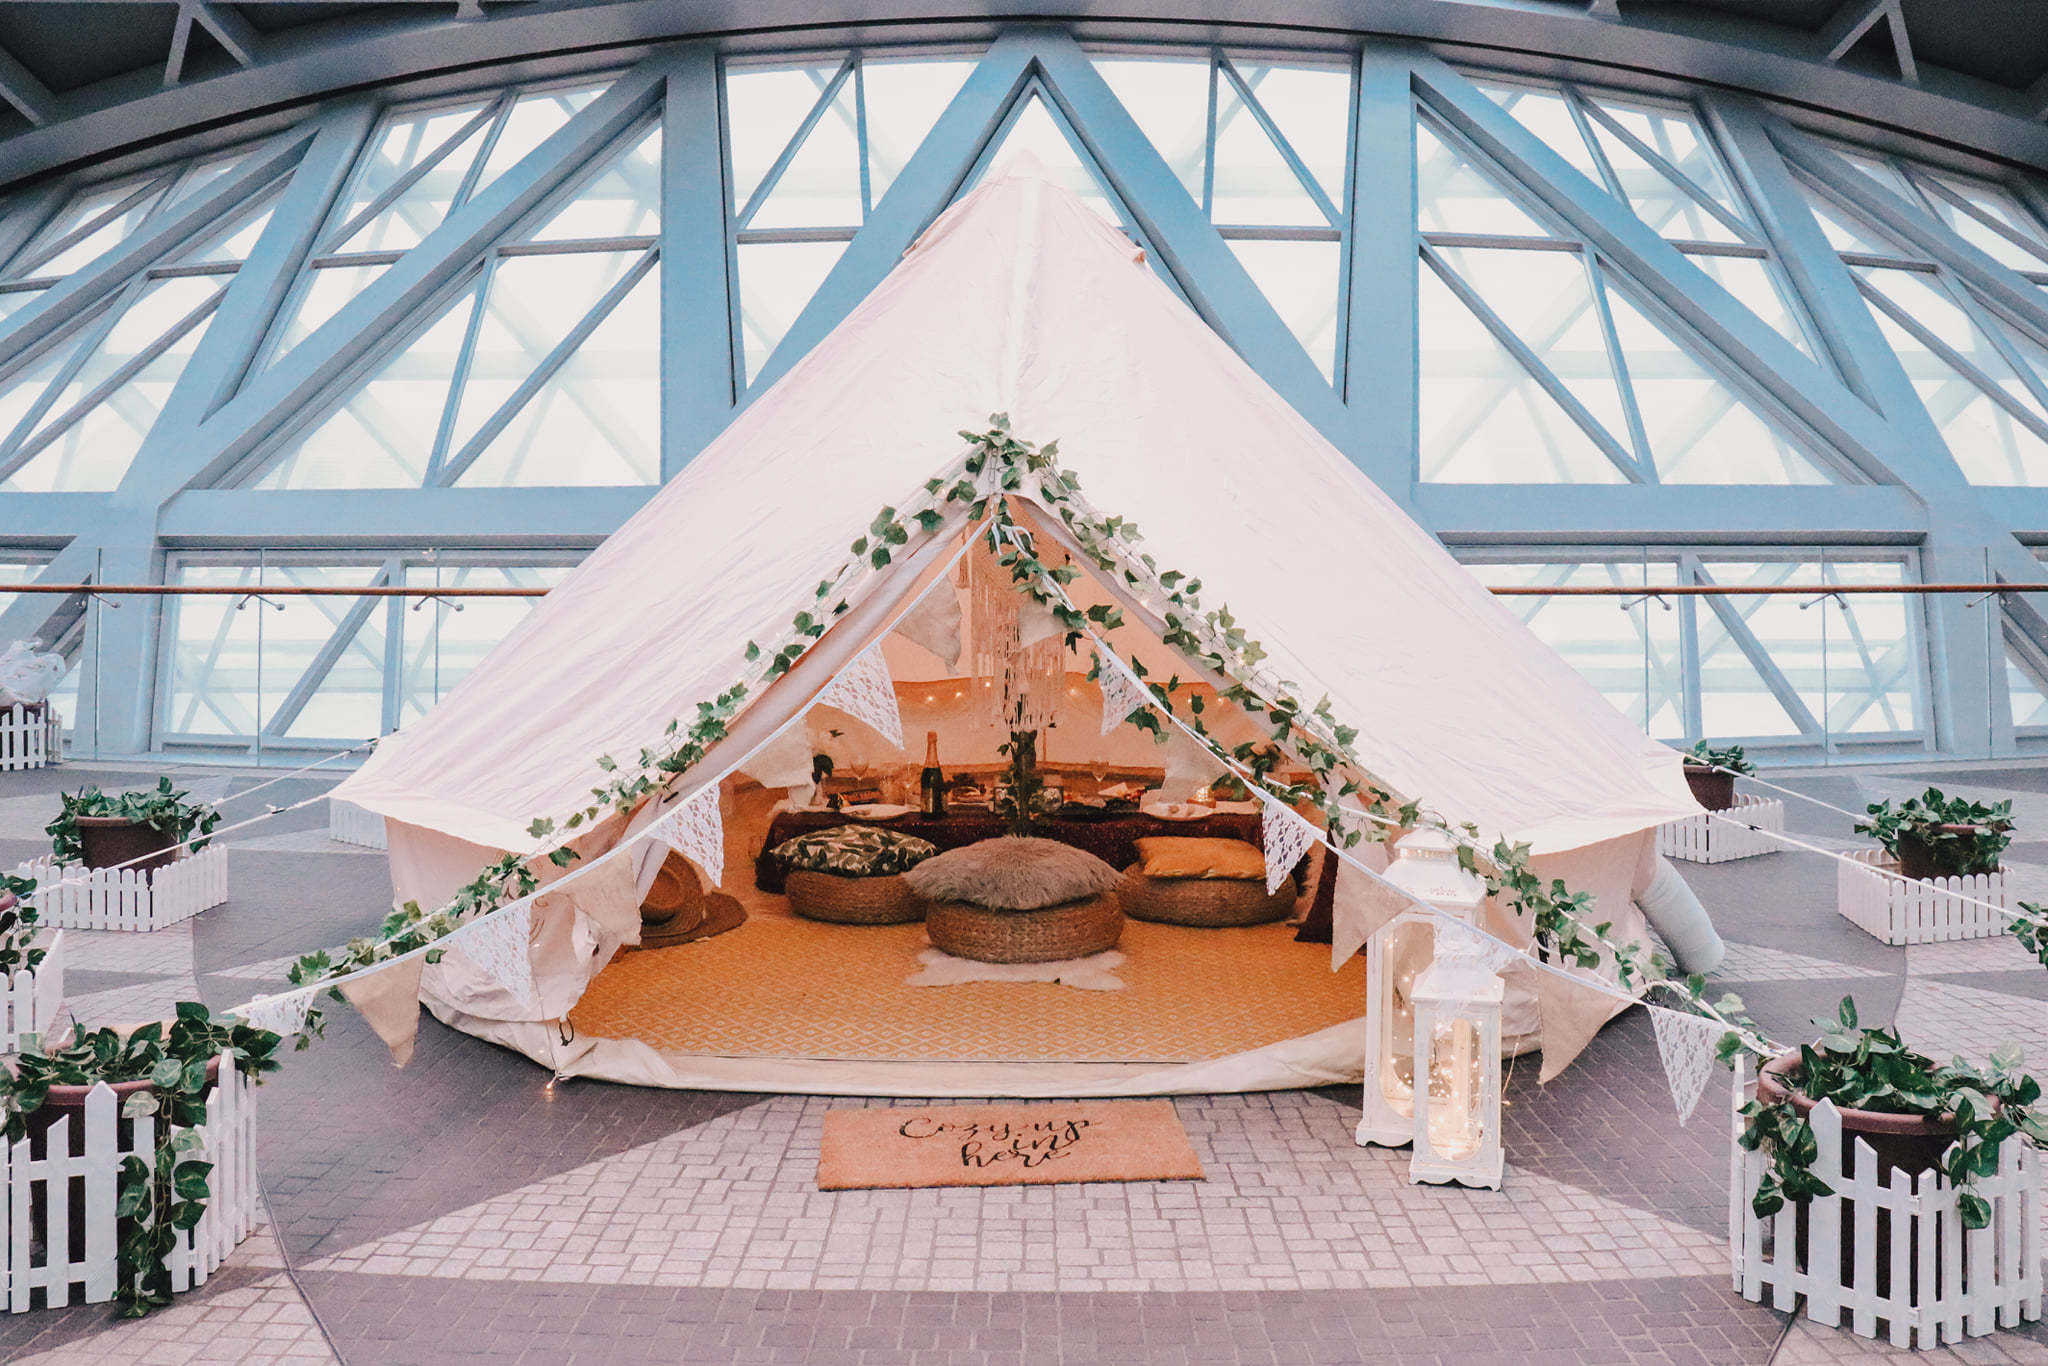 You can now go glamping at Jewel and spend the night at the airport